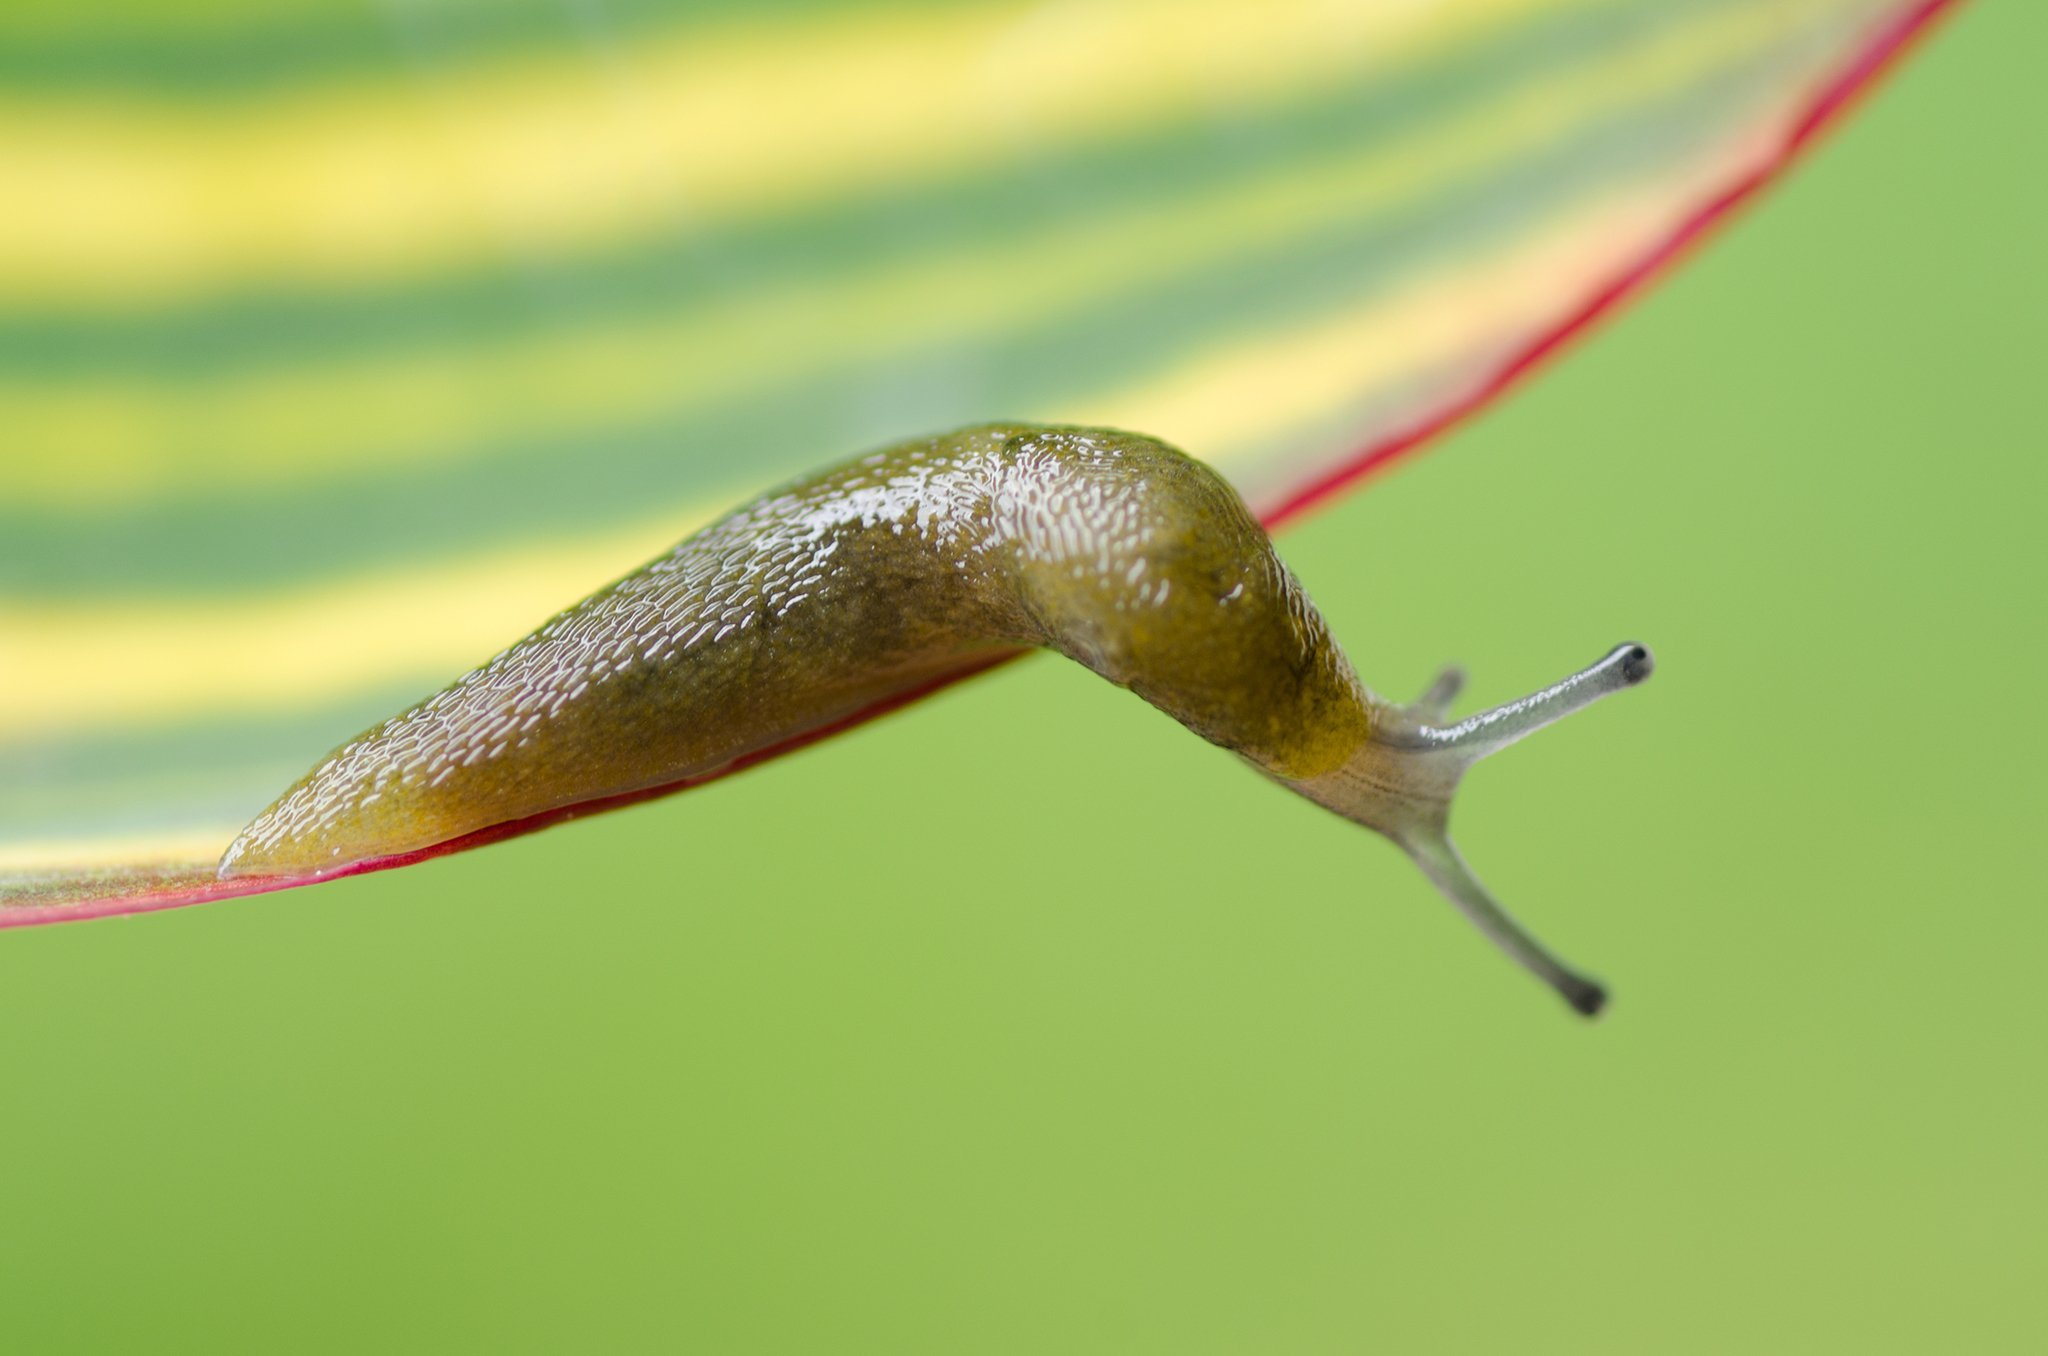 DO NOT REUSE A slug is shown in a file image. (Credit: Achille Salerni/Eyem/Getty Image)